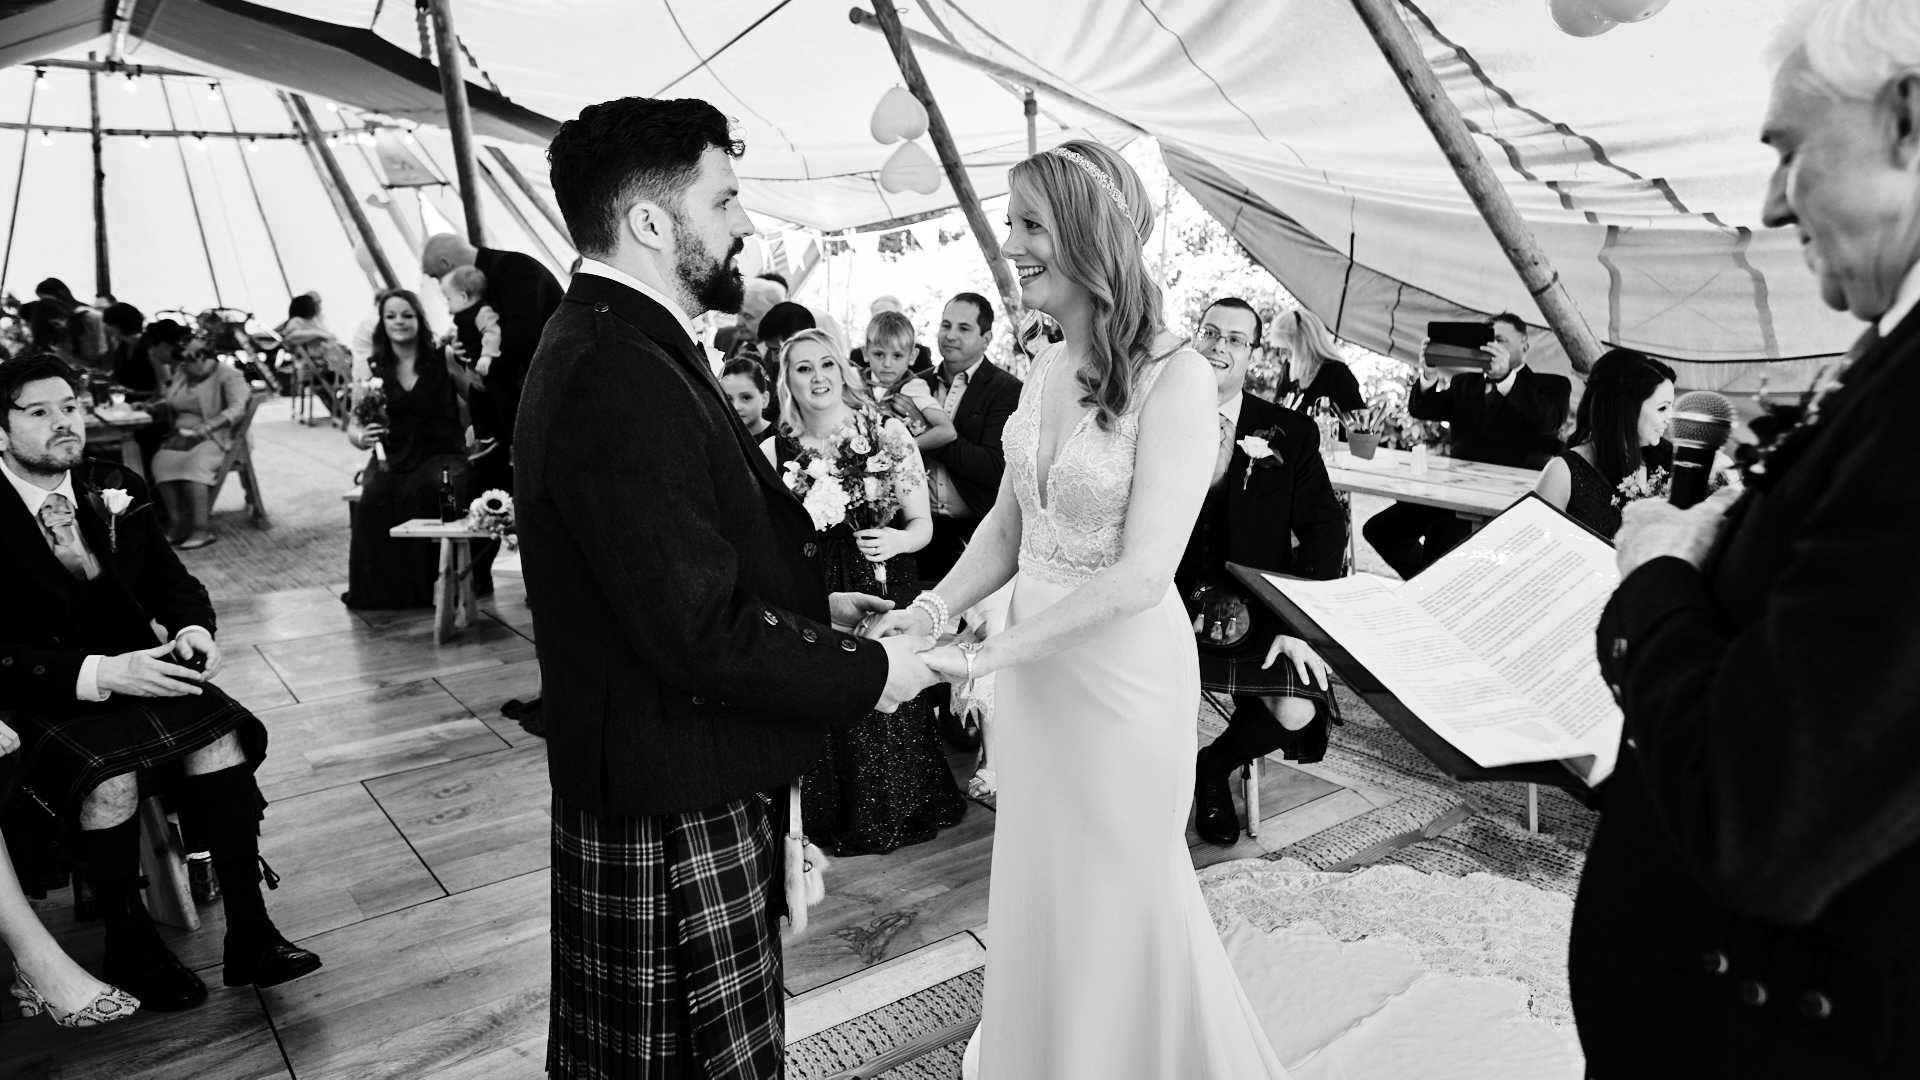 black and white photograph of the bride and groom holding in hands in front of all their wedding guests at the start of the wedding ceremony